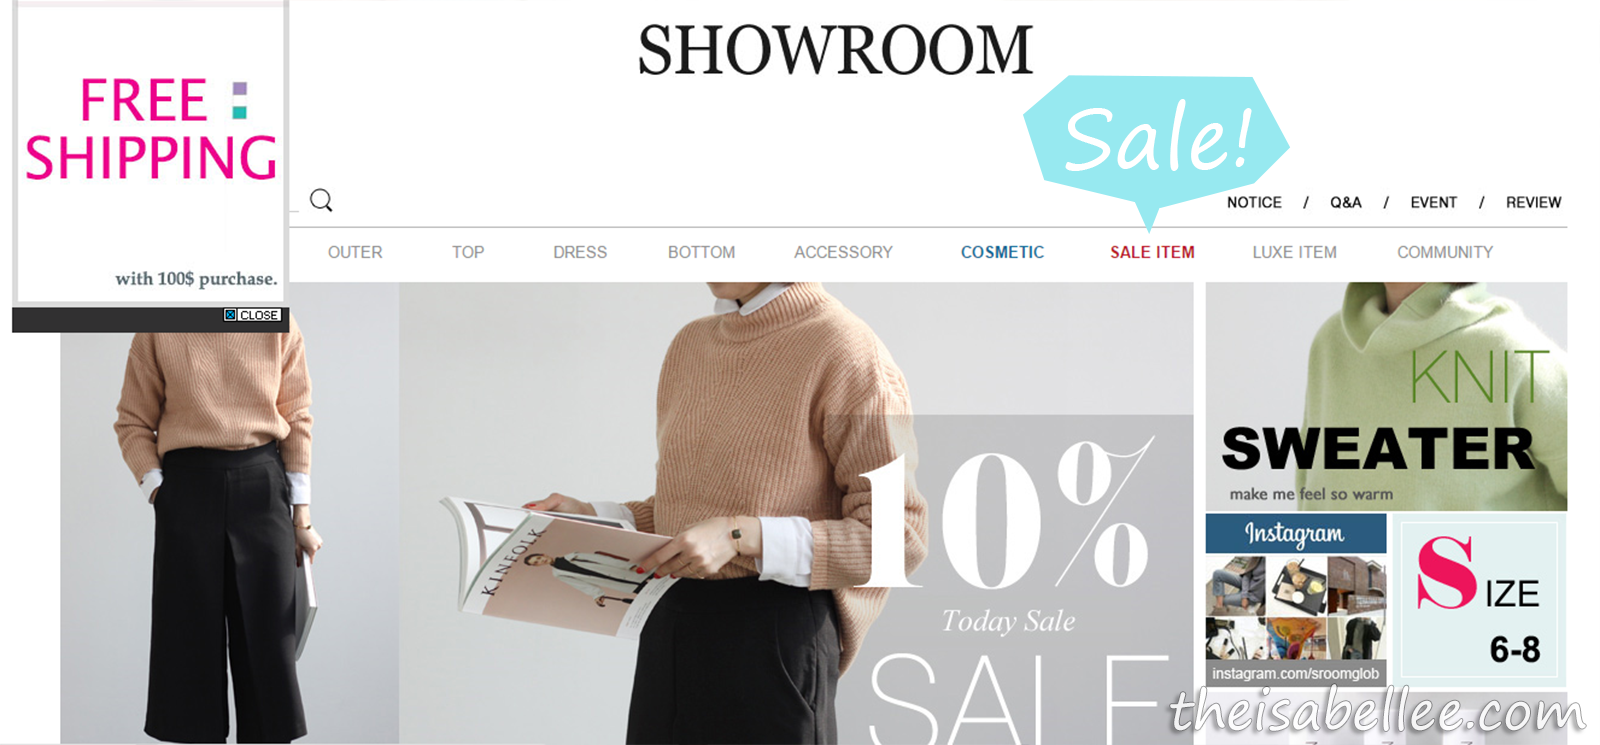 Showroom Korea Sales item and free shipping